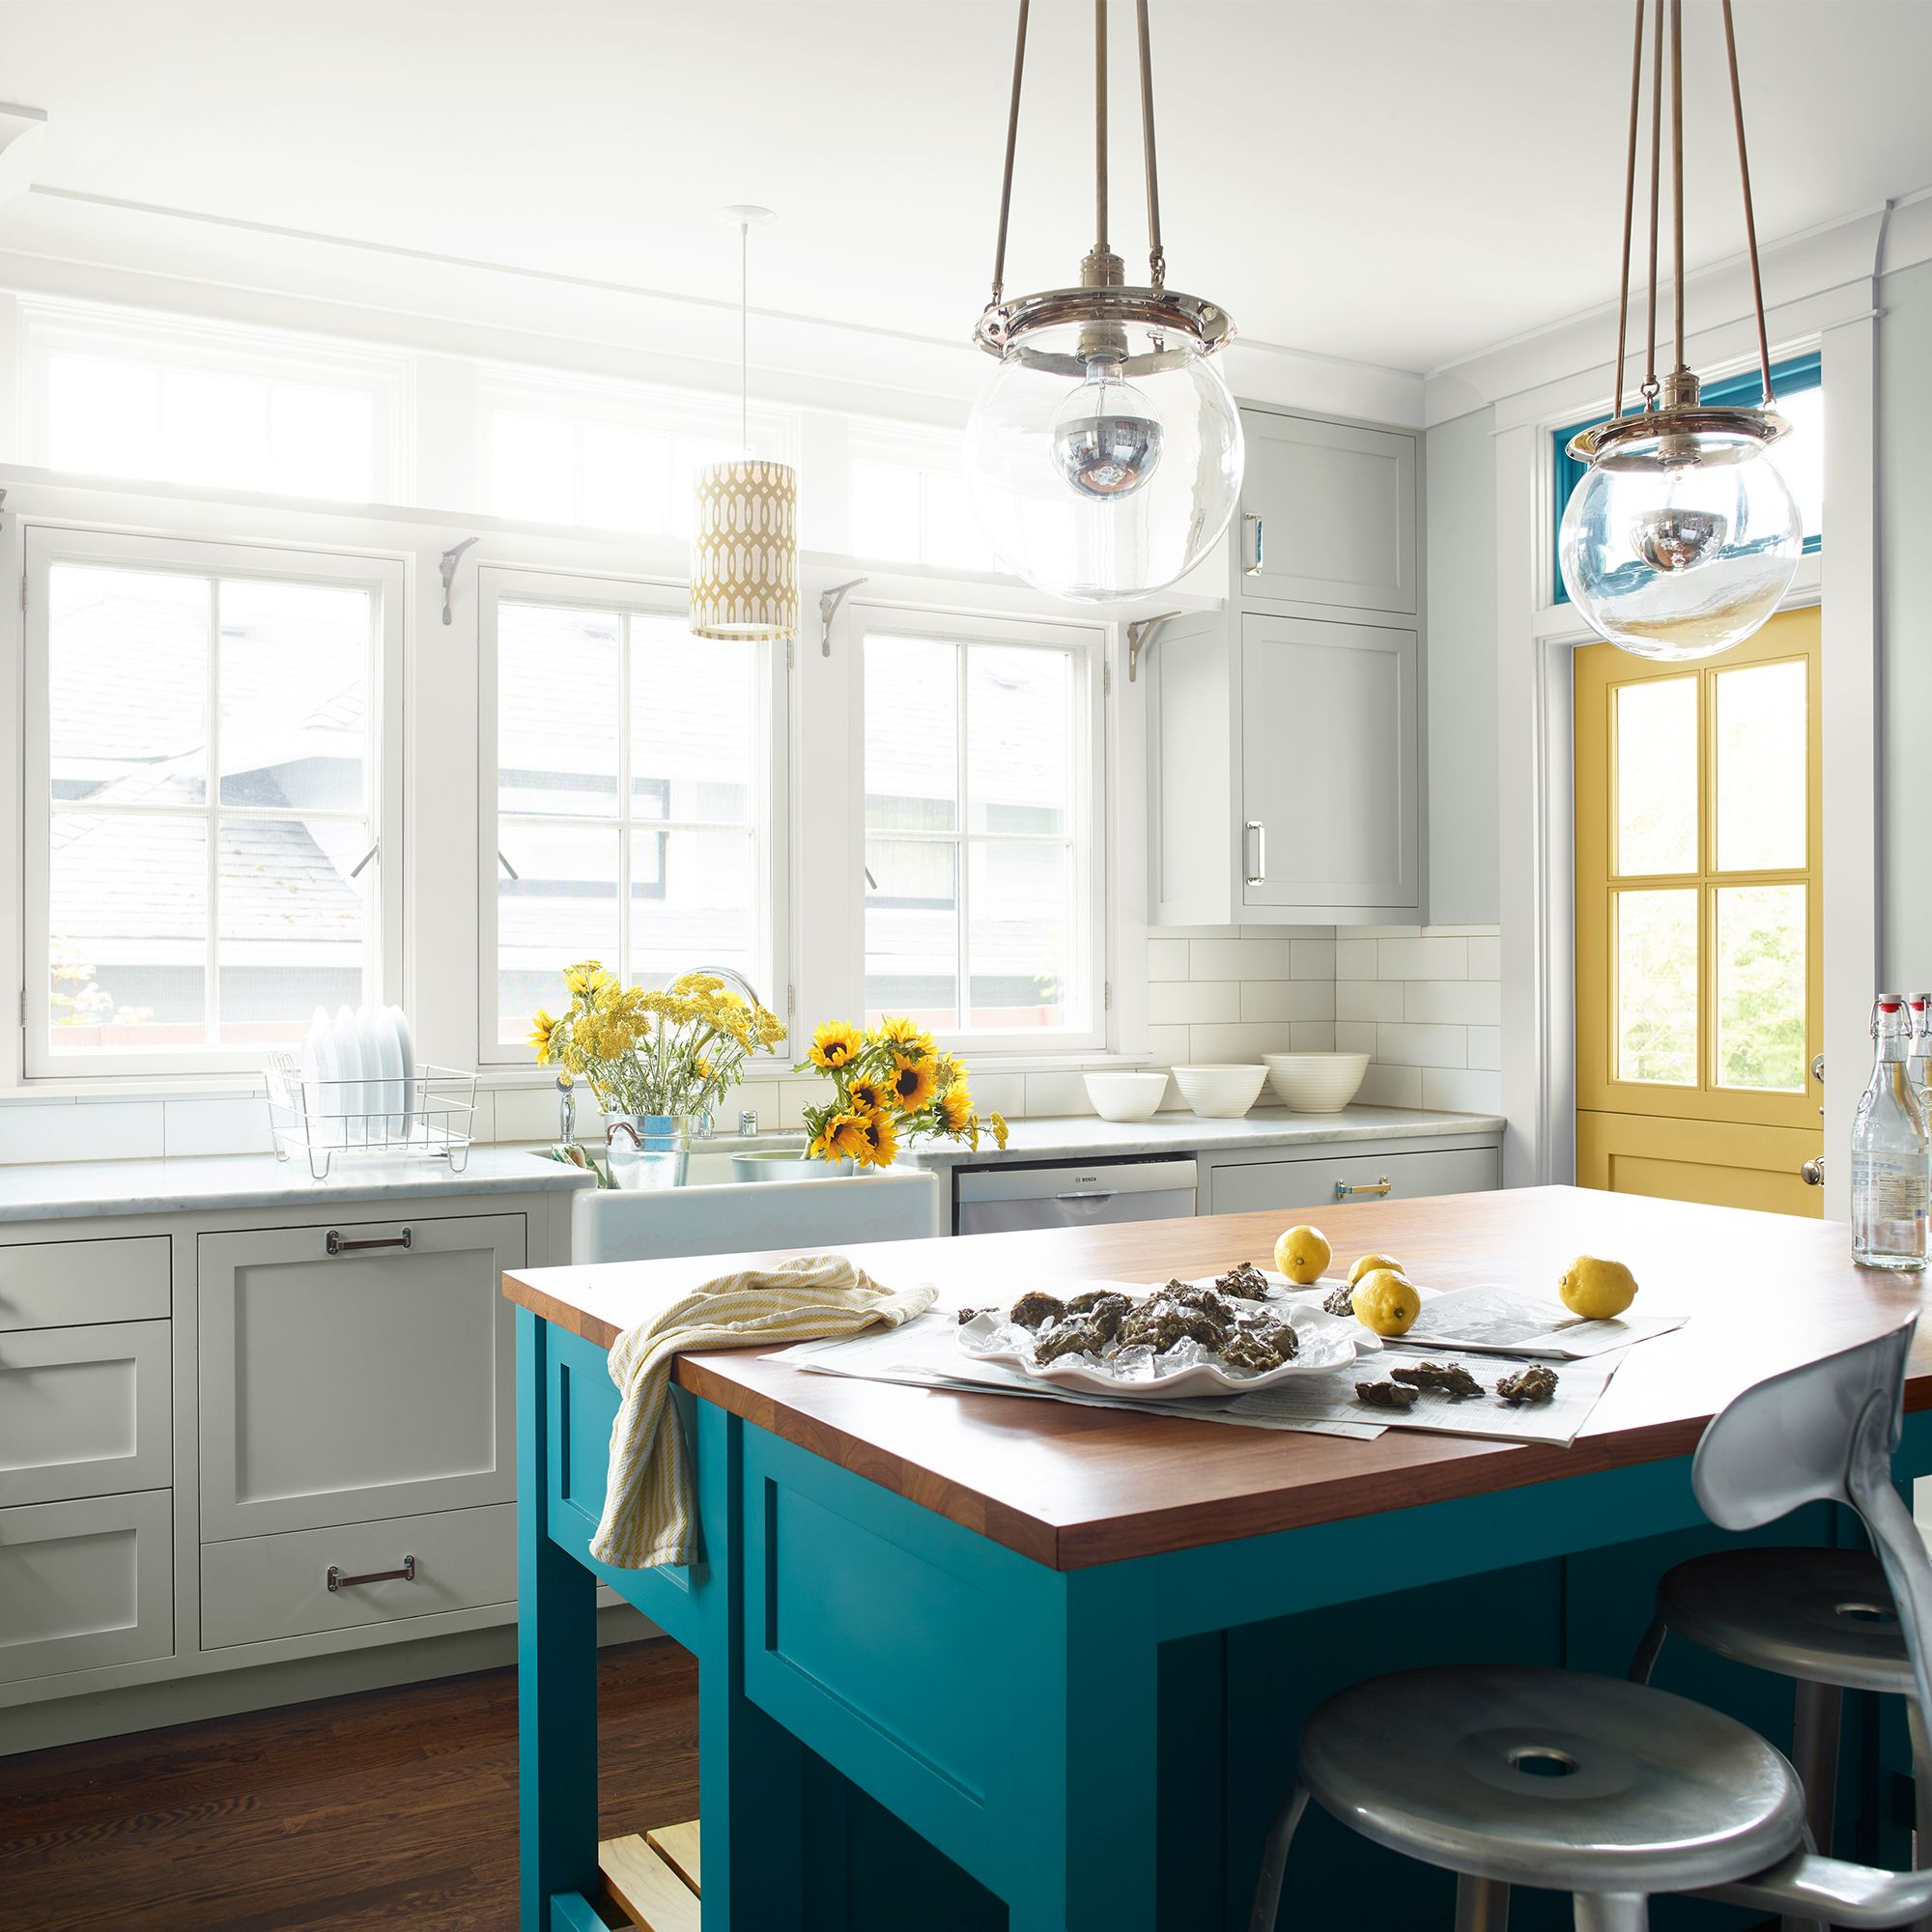 Kitchen with Center Island and White Cabinets